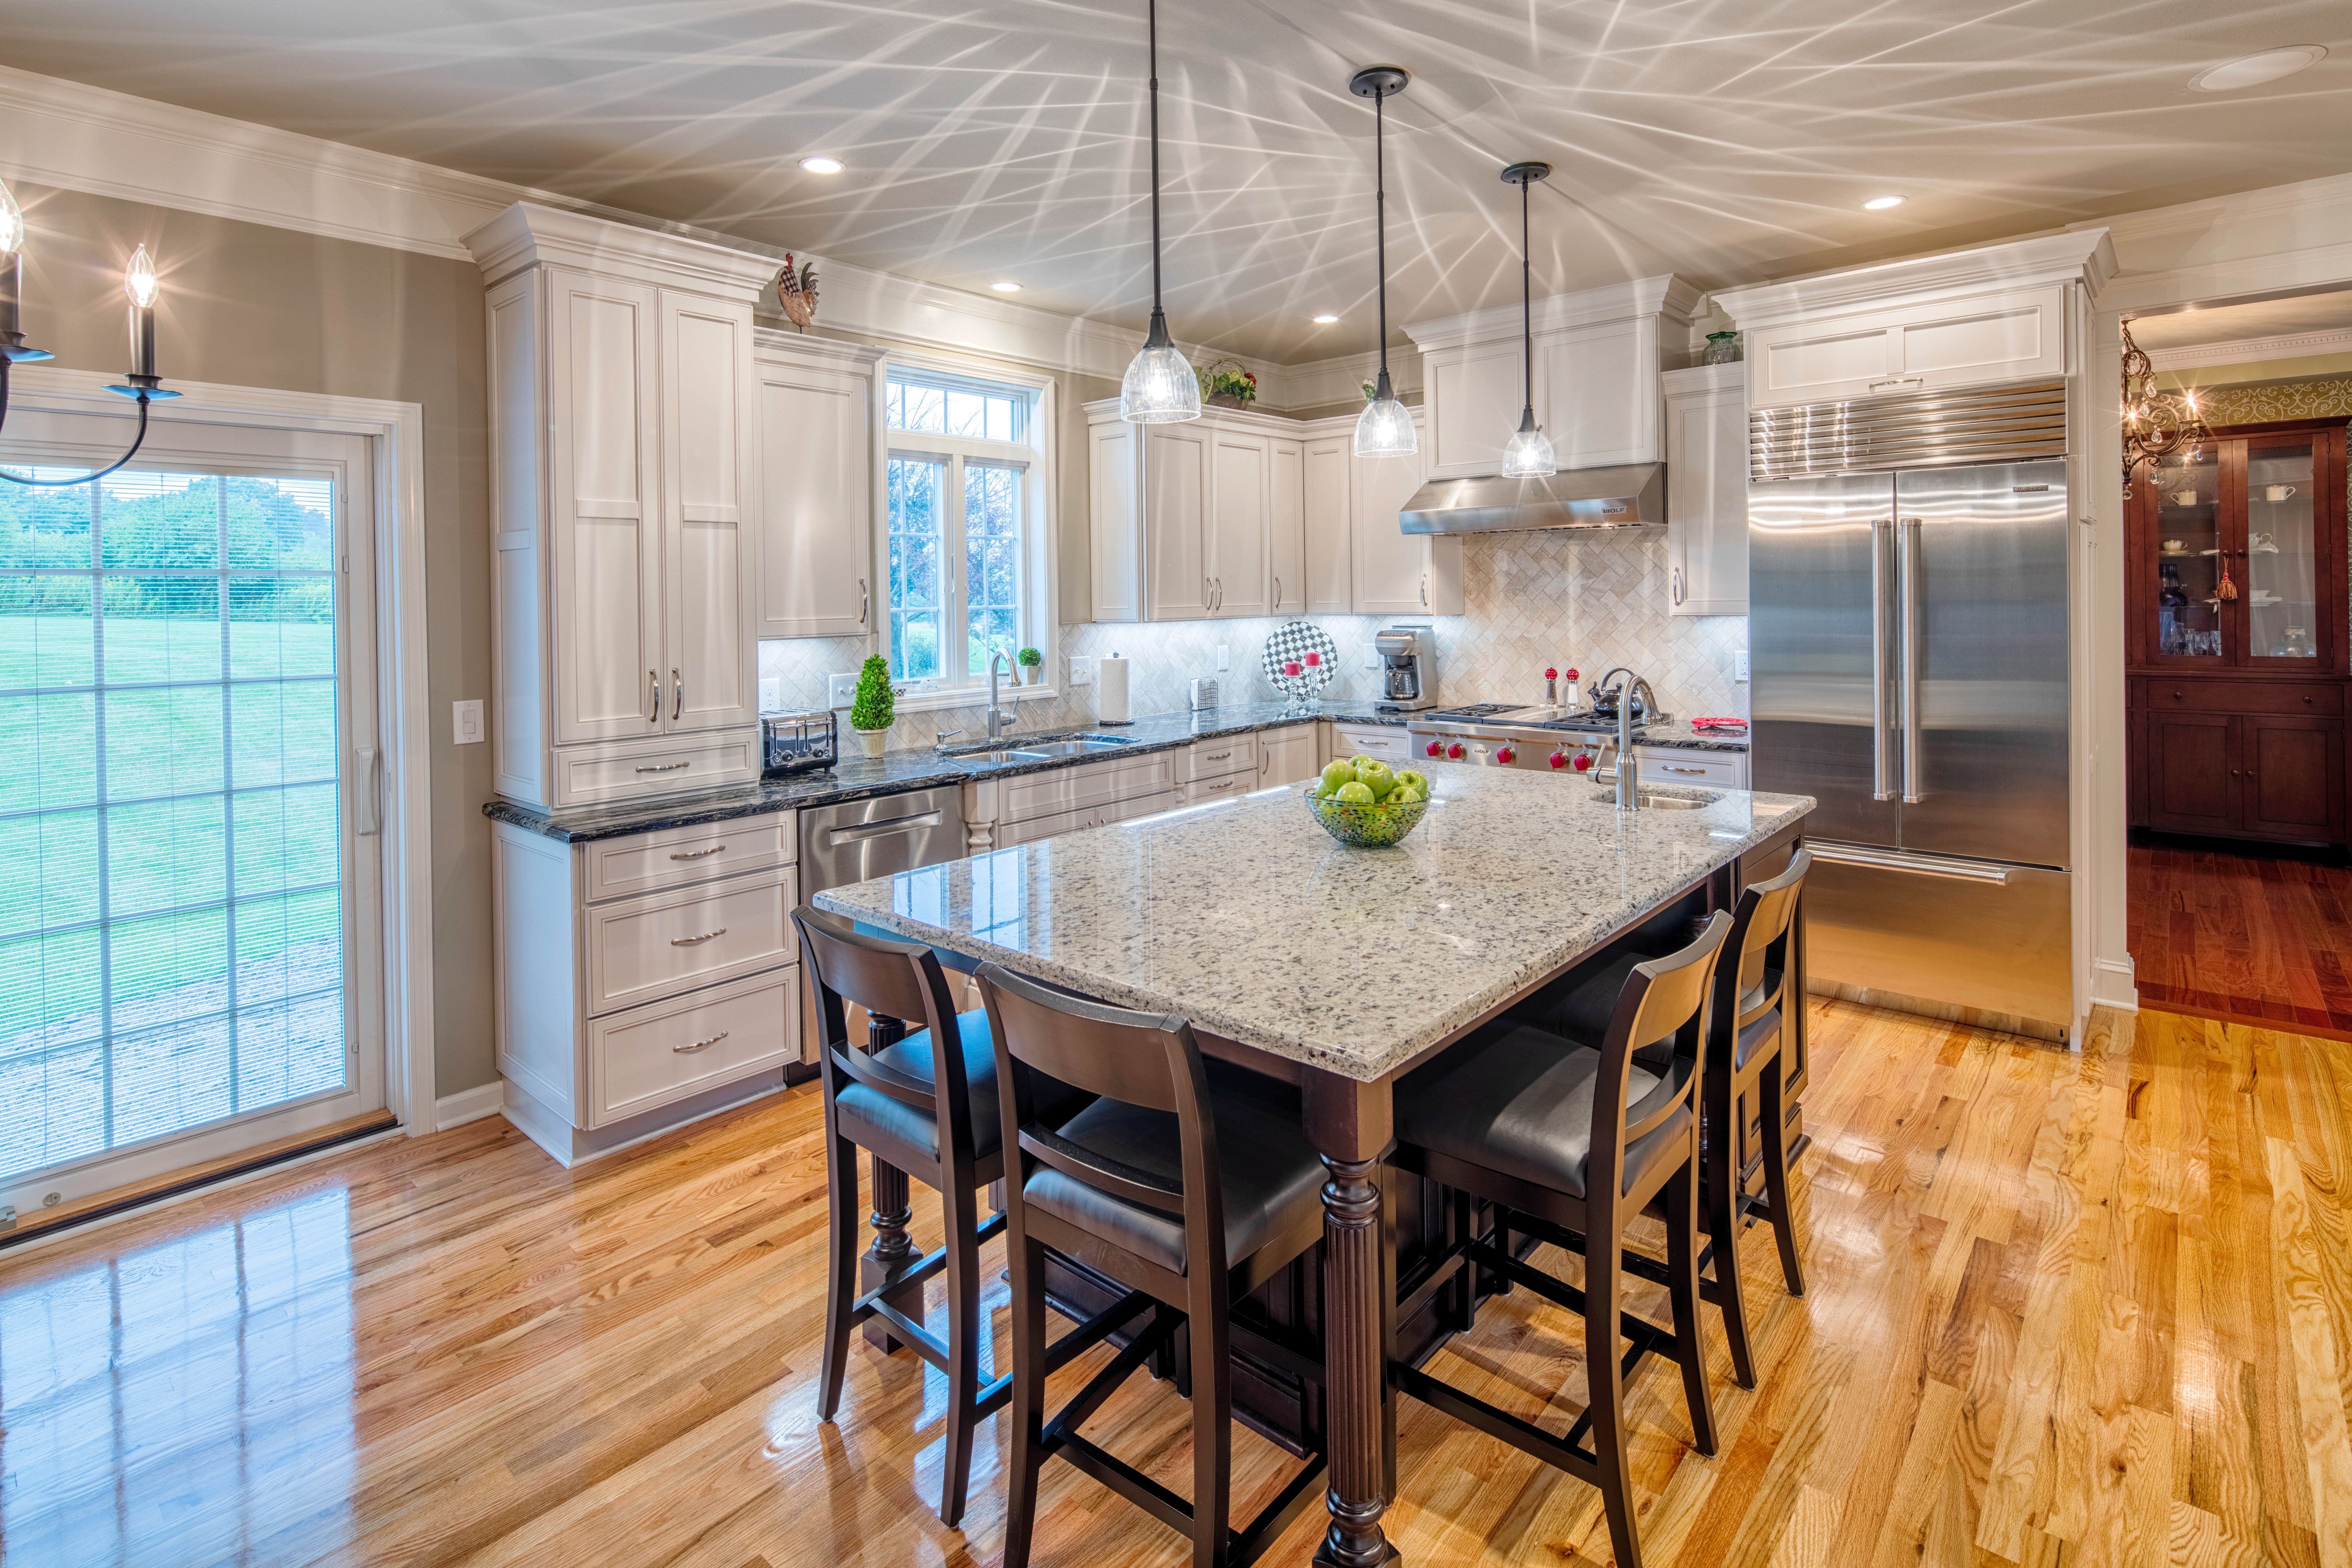 Bright lights, and complimenting Cambria counter tops and island. Spacious seating at the island and stainless steel appliances give this kitchen an easy flow and clean look.